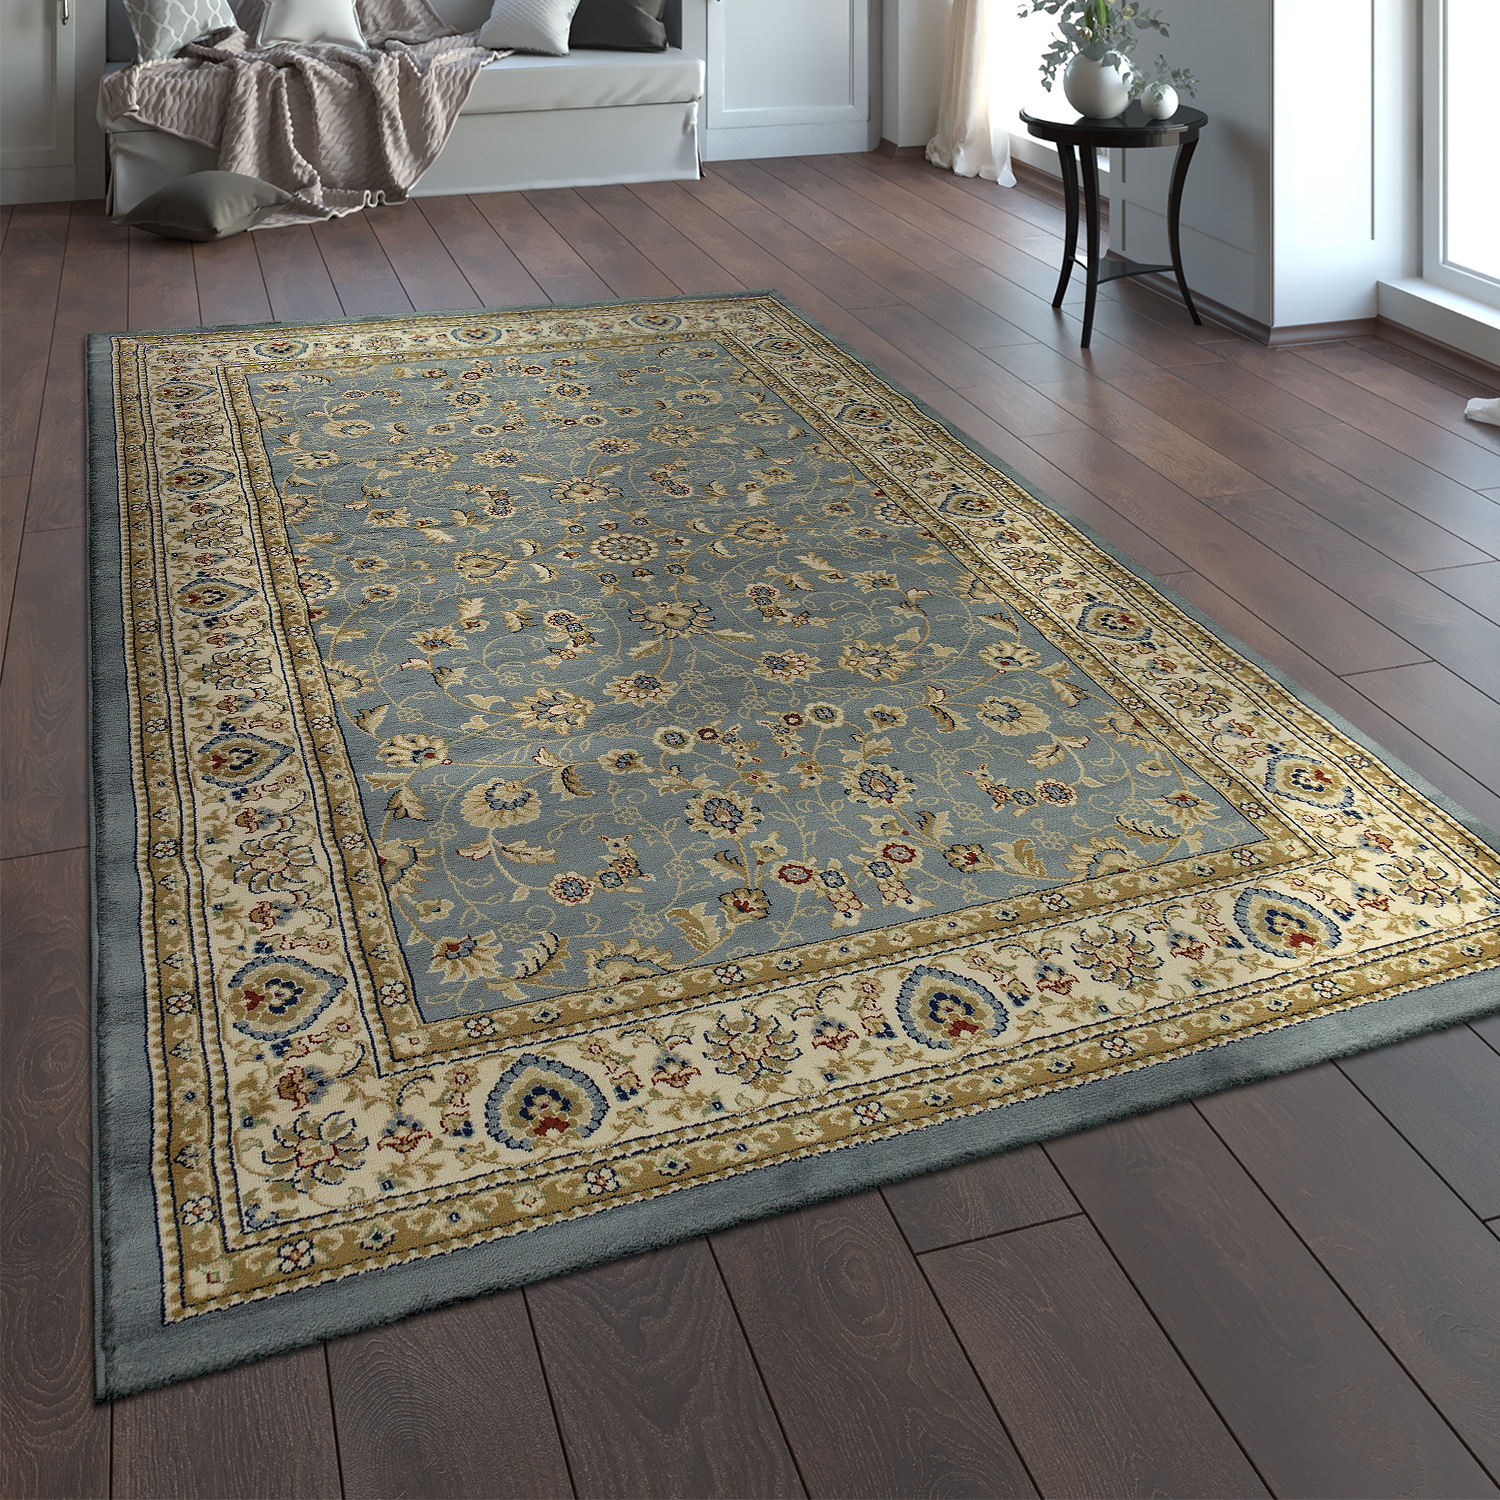 tapis oriental traditionnel classique aspect persan floral gris bleu cr me tapis optique orientale. Black Bedroom Furniture Sets. Home Design Ideas